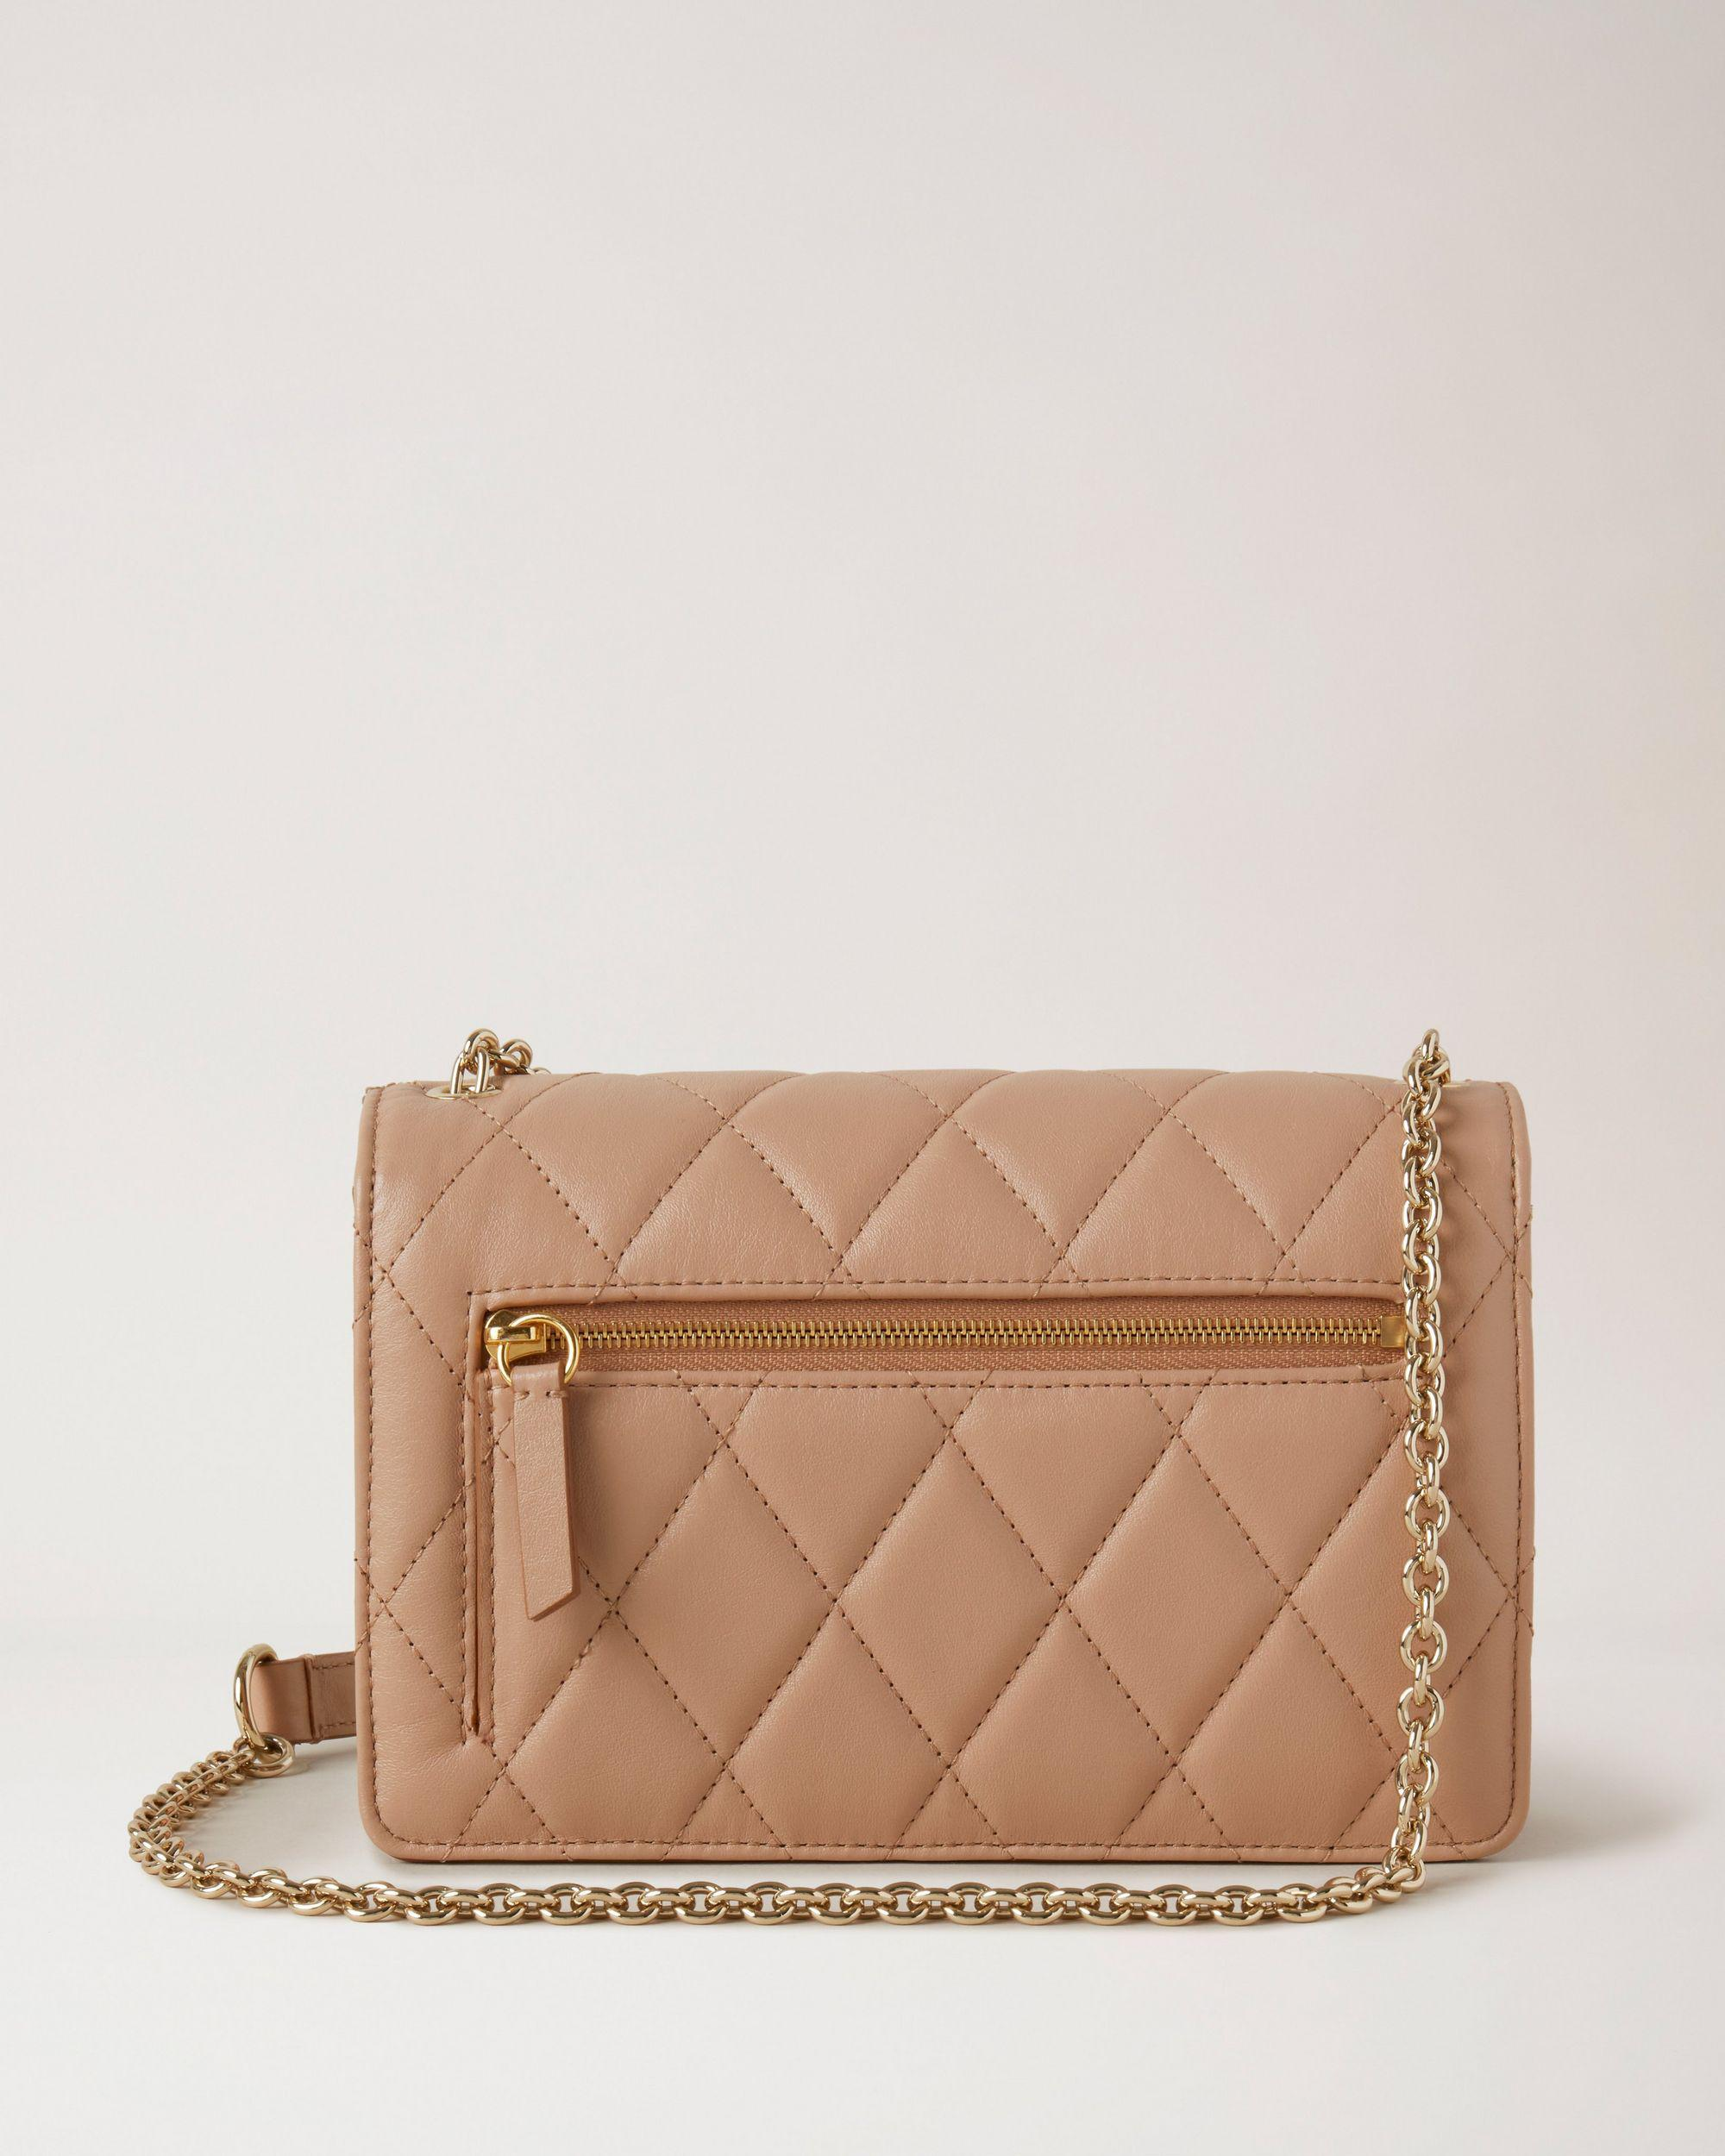 Small Darley with Leather & Chain Strap 1